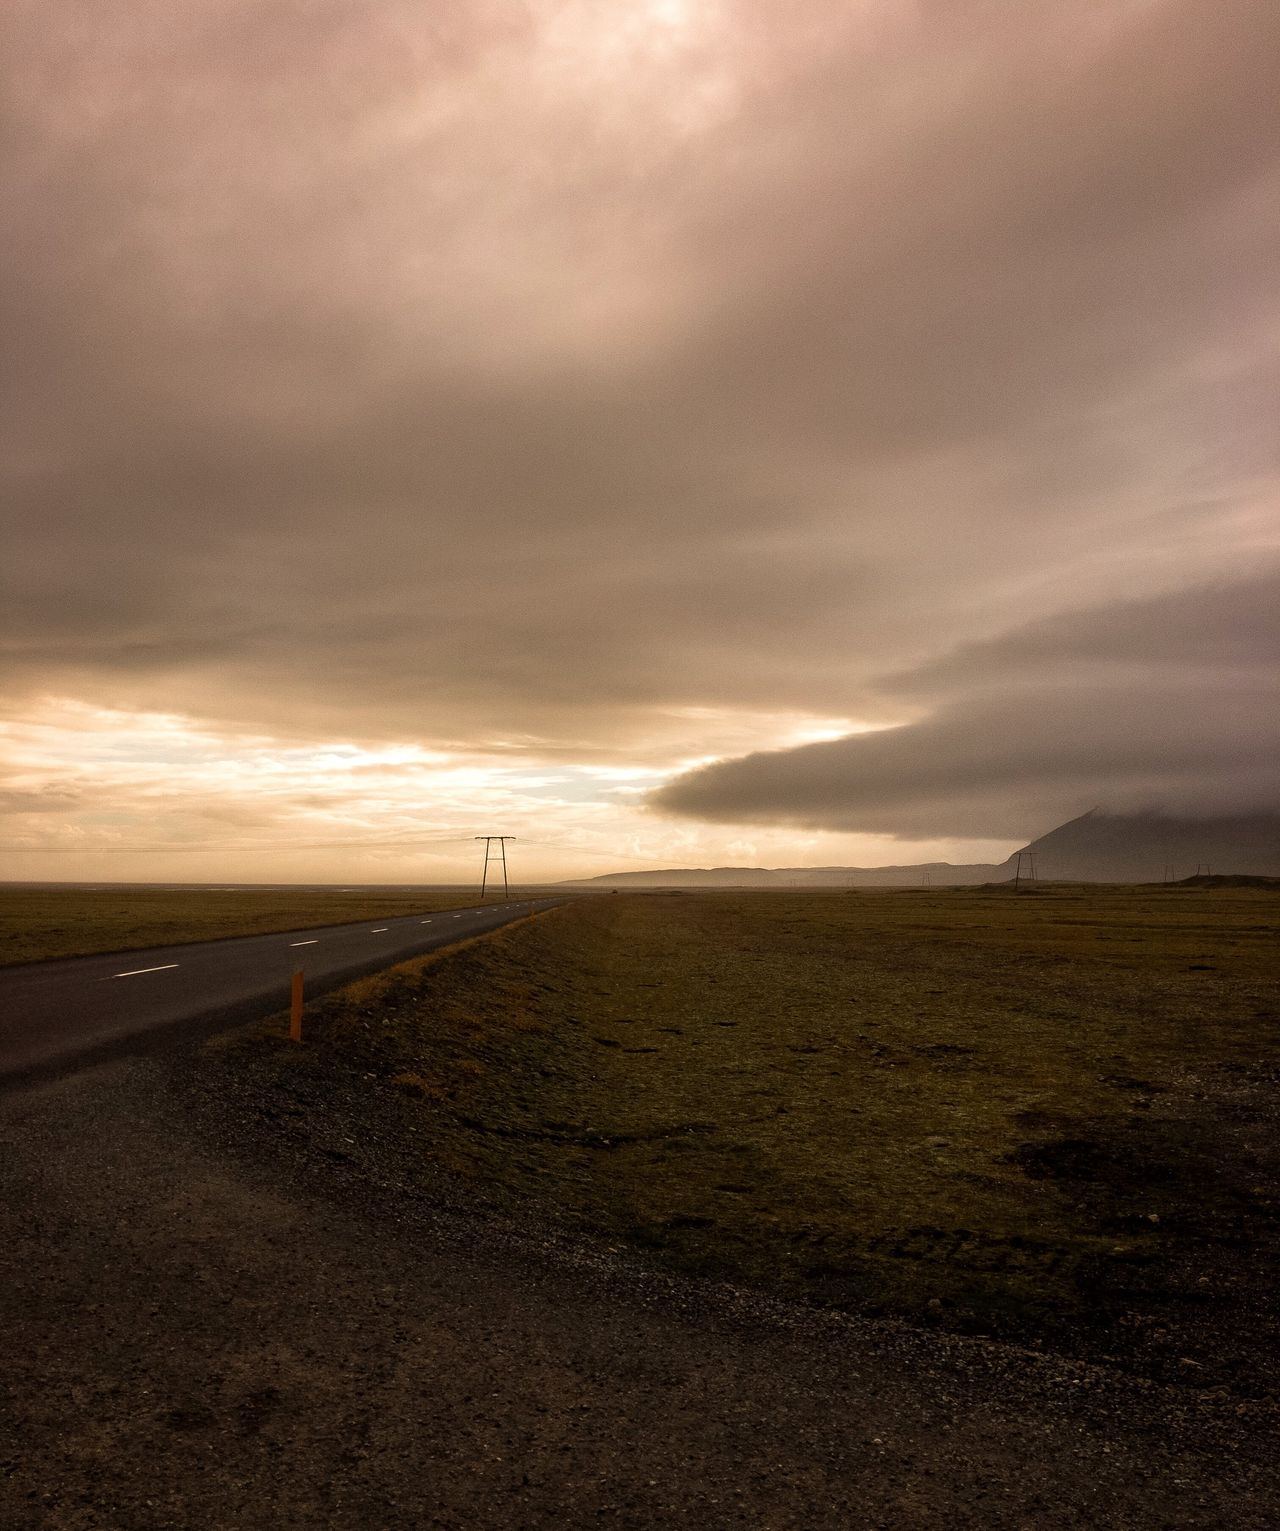 Iceland Iceland_collection Outdoors Sky Detail Alone Peaceful Electricity  Powerlines Landscape Electricity Pylon Nature Mountain Human Settlement Man Made Structure Highway Road